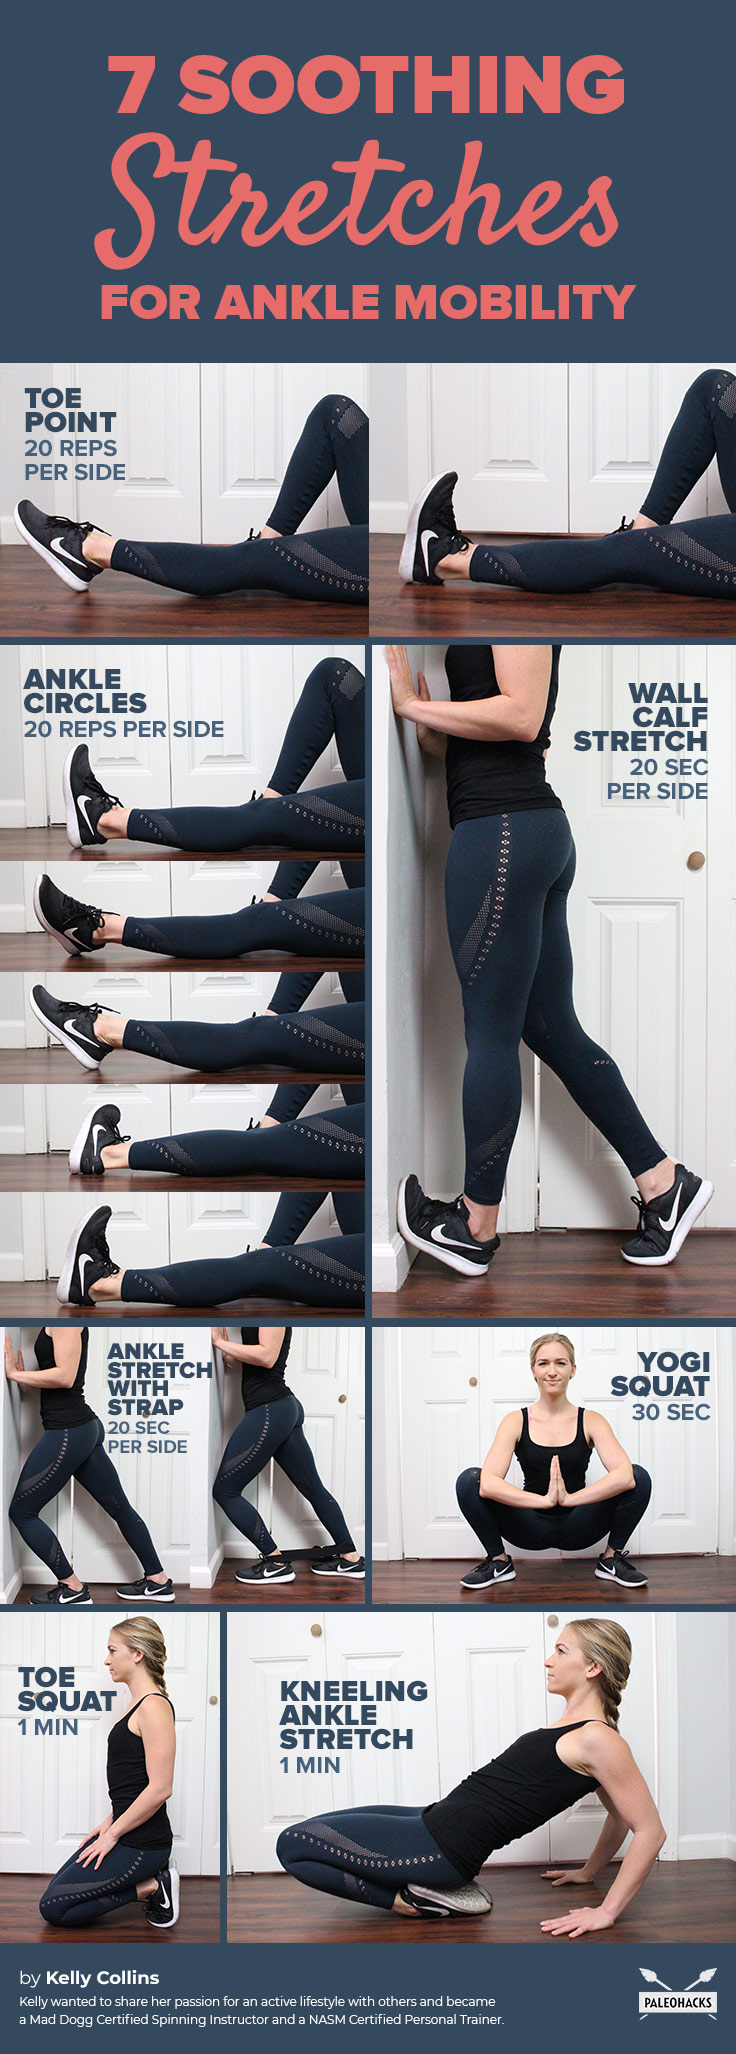 7-Soothing-Stretches-for-Ankle-Mobility-infog2.jpg